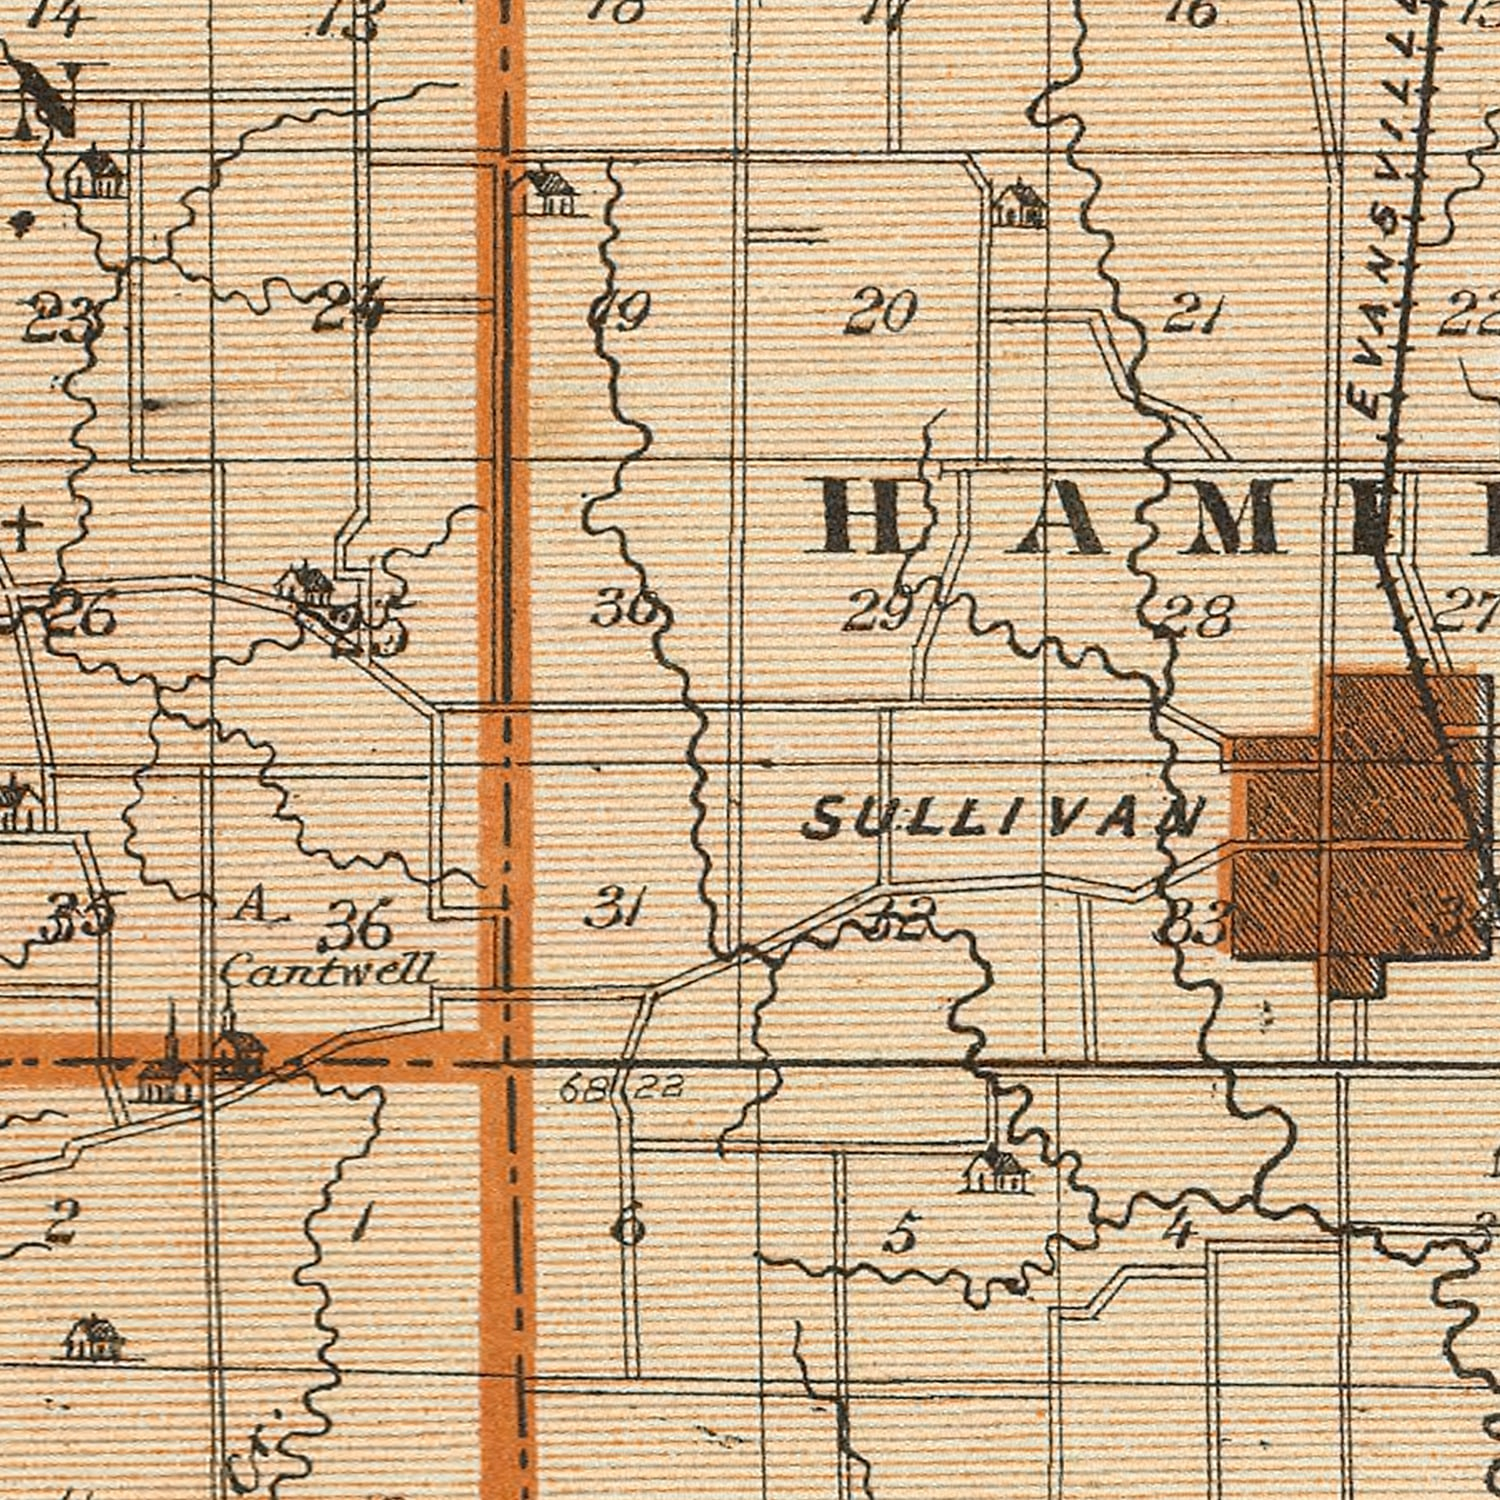 Vintage Map of Sullivan County Indiana, 1876